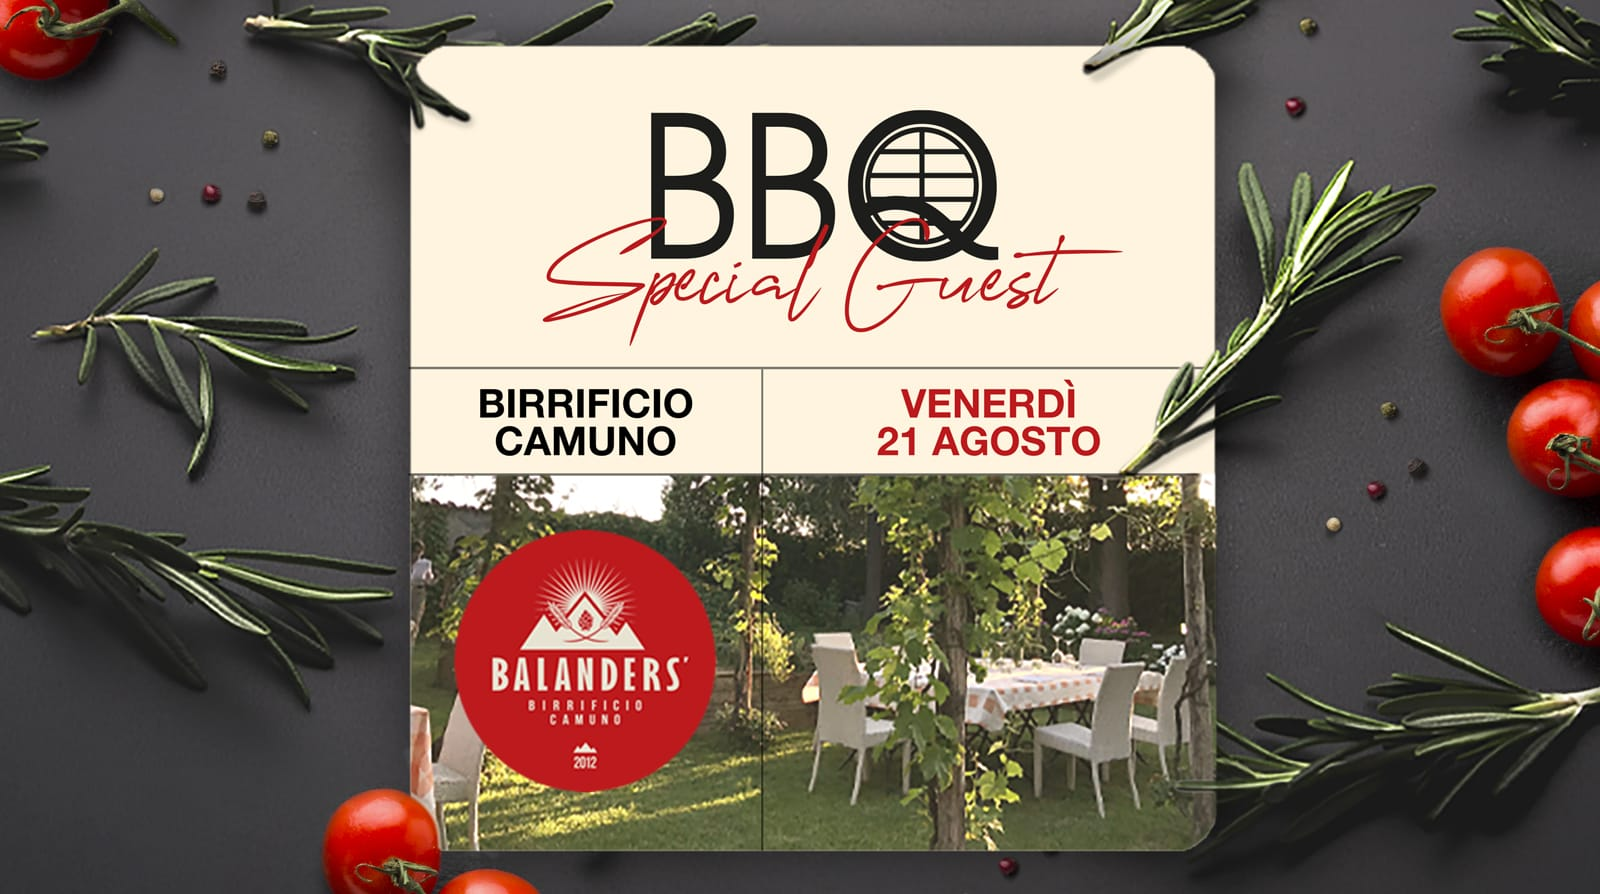 BBQ Special Guest